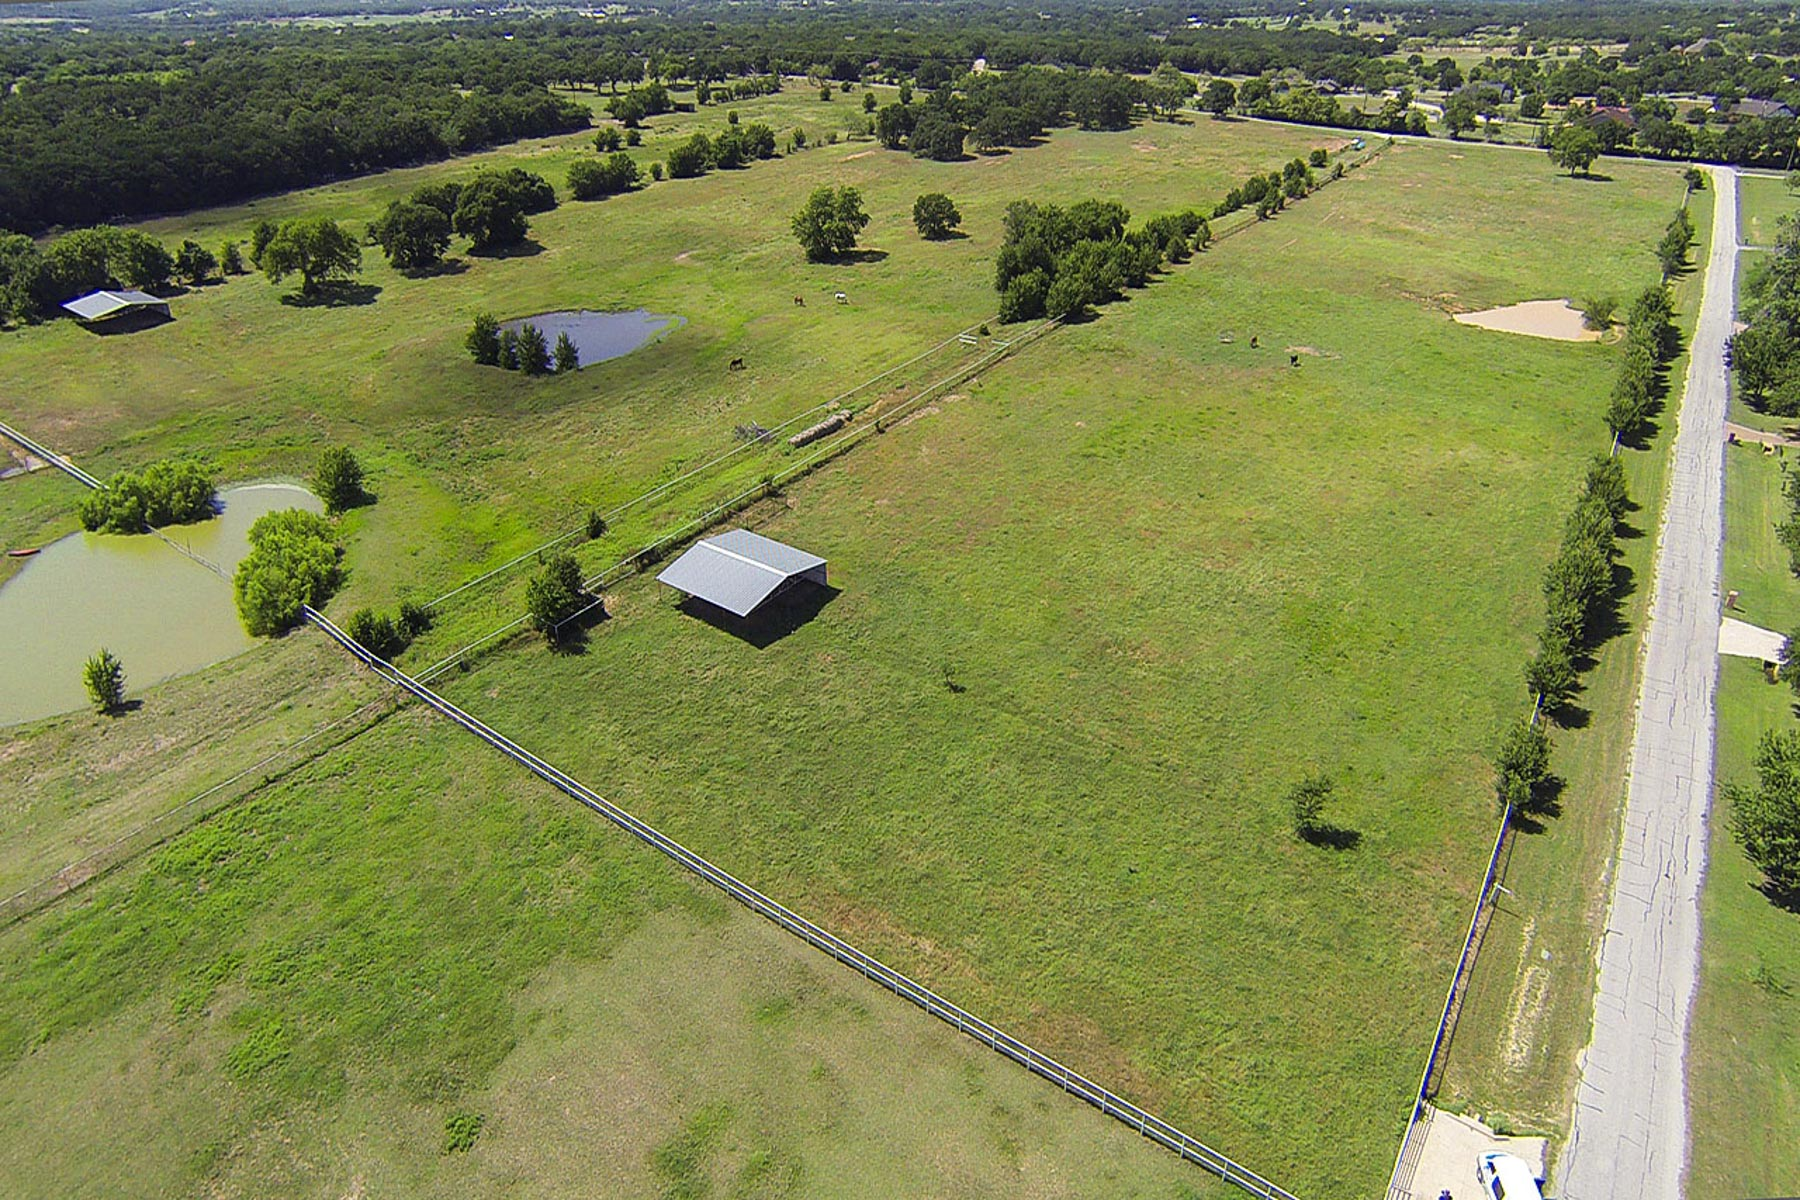 Land for Sale at Pristine 2 Acre Lot 1060 Rockgate Rd S Bartonville, Texas 76226 United States